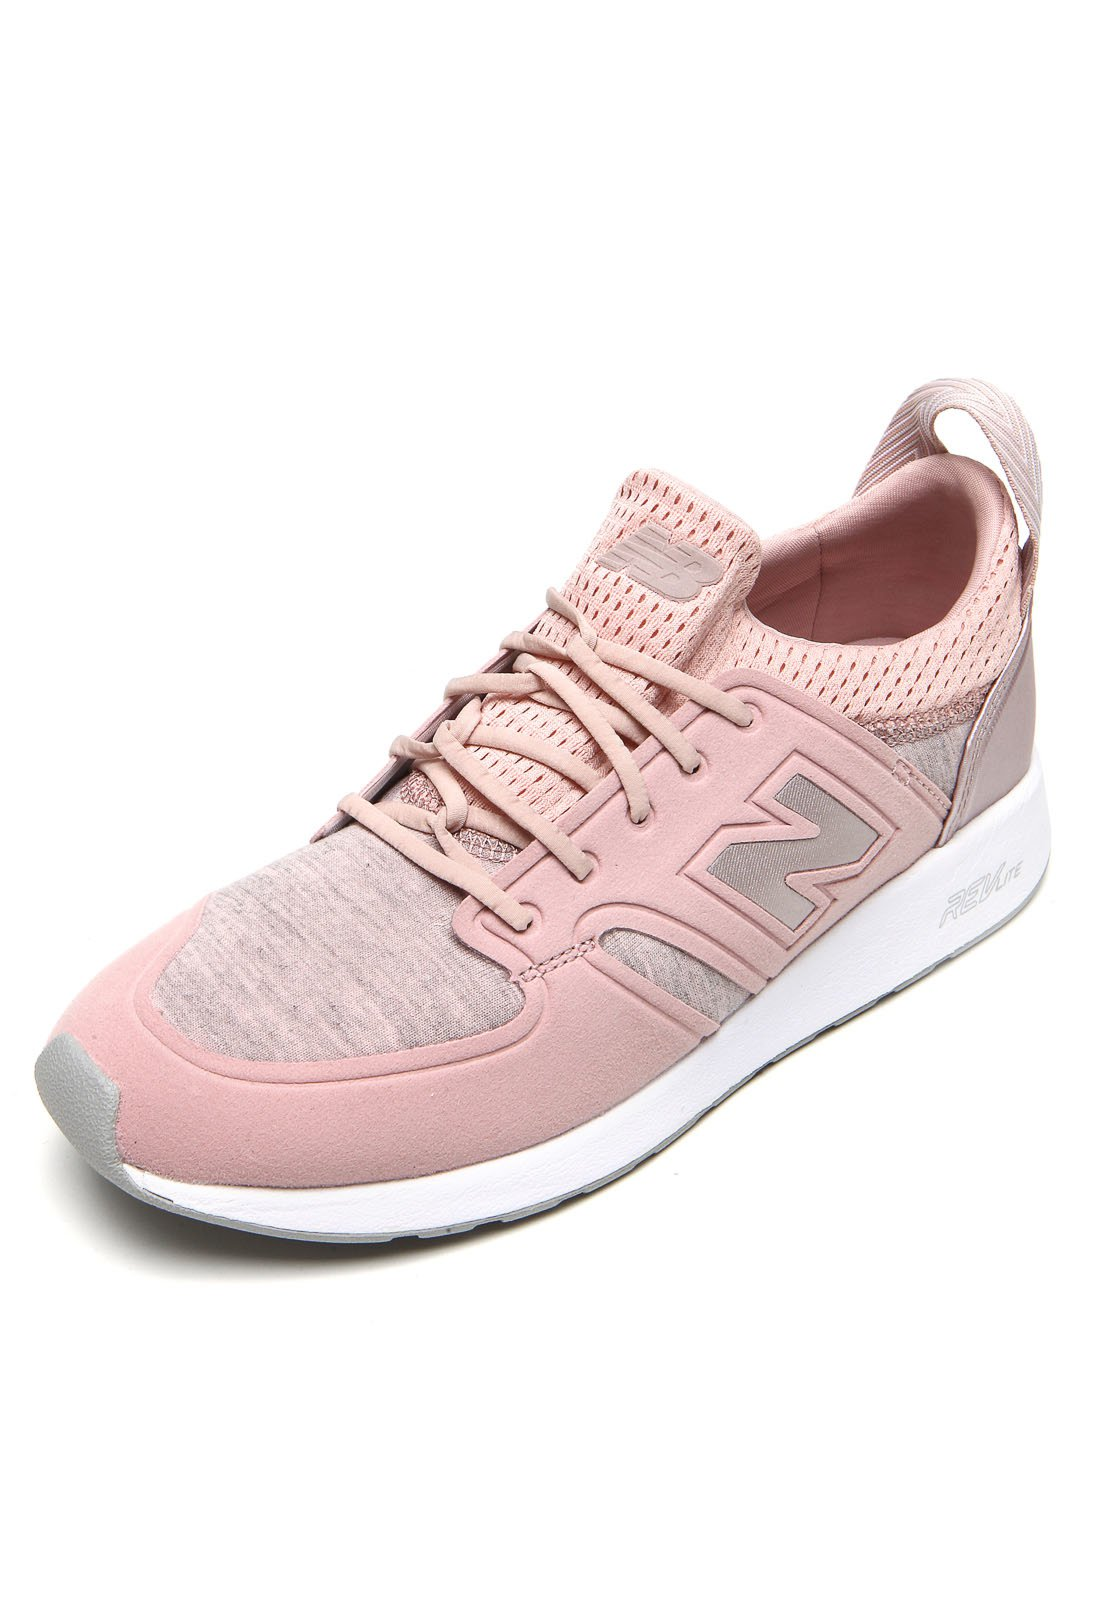 new balance 420 rosa, OFF 73%,where to buy!